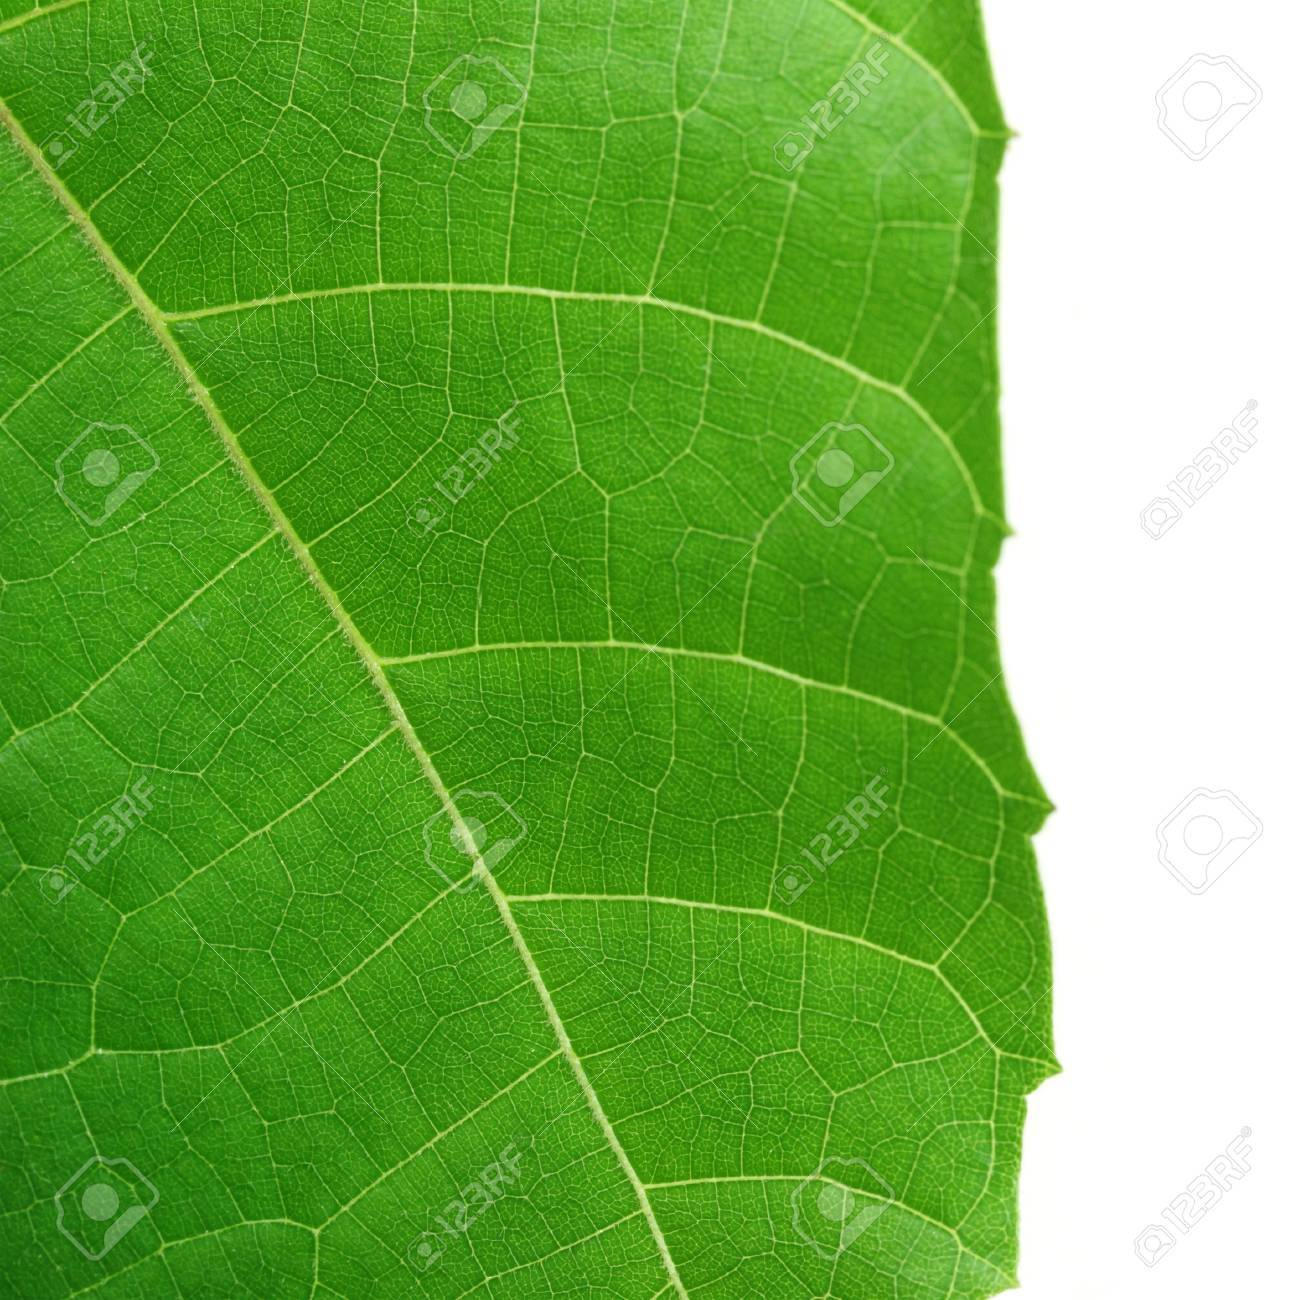 Decorative Leaf Of Abroma Augusta Or Medicinal Olatkambal Of Stock